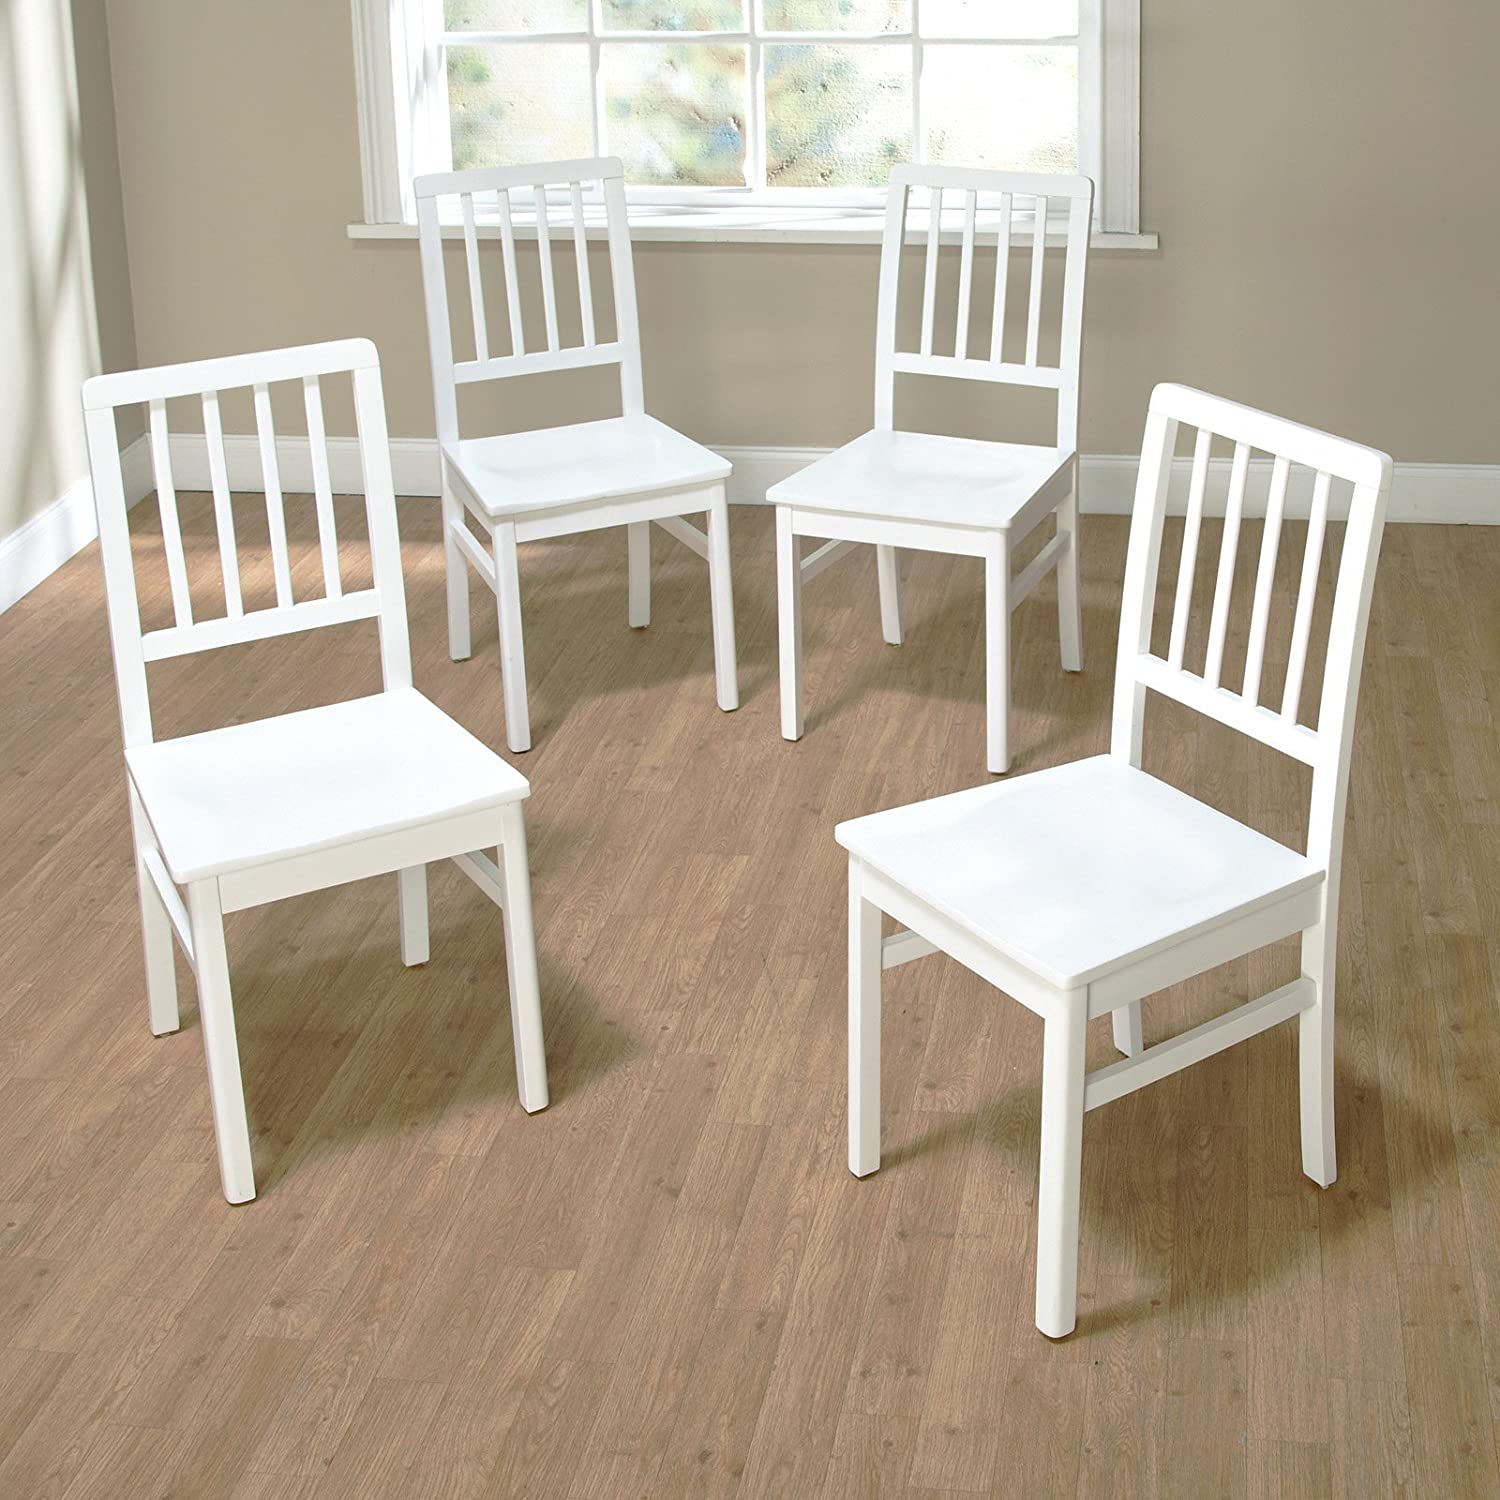 Amazon TMS Camden Dining Chair White Wash Set of 4 Chairs